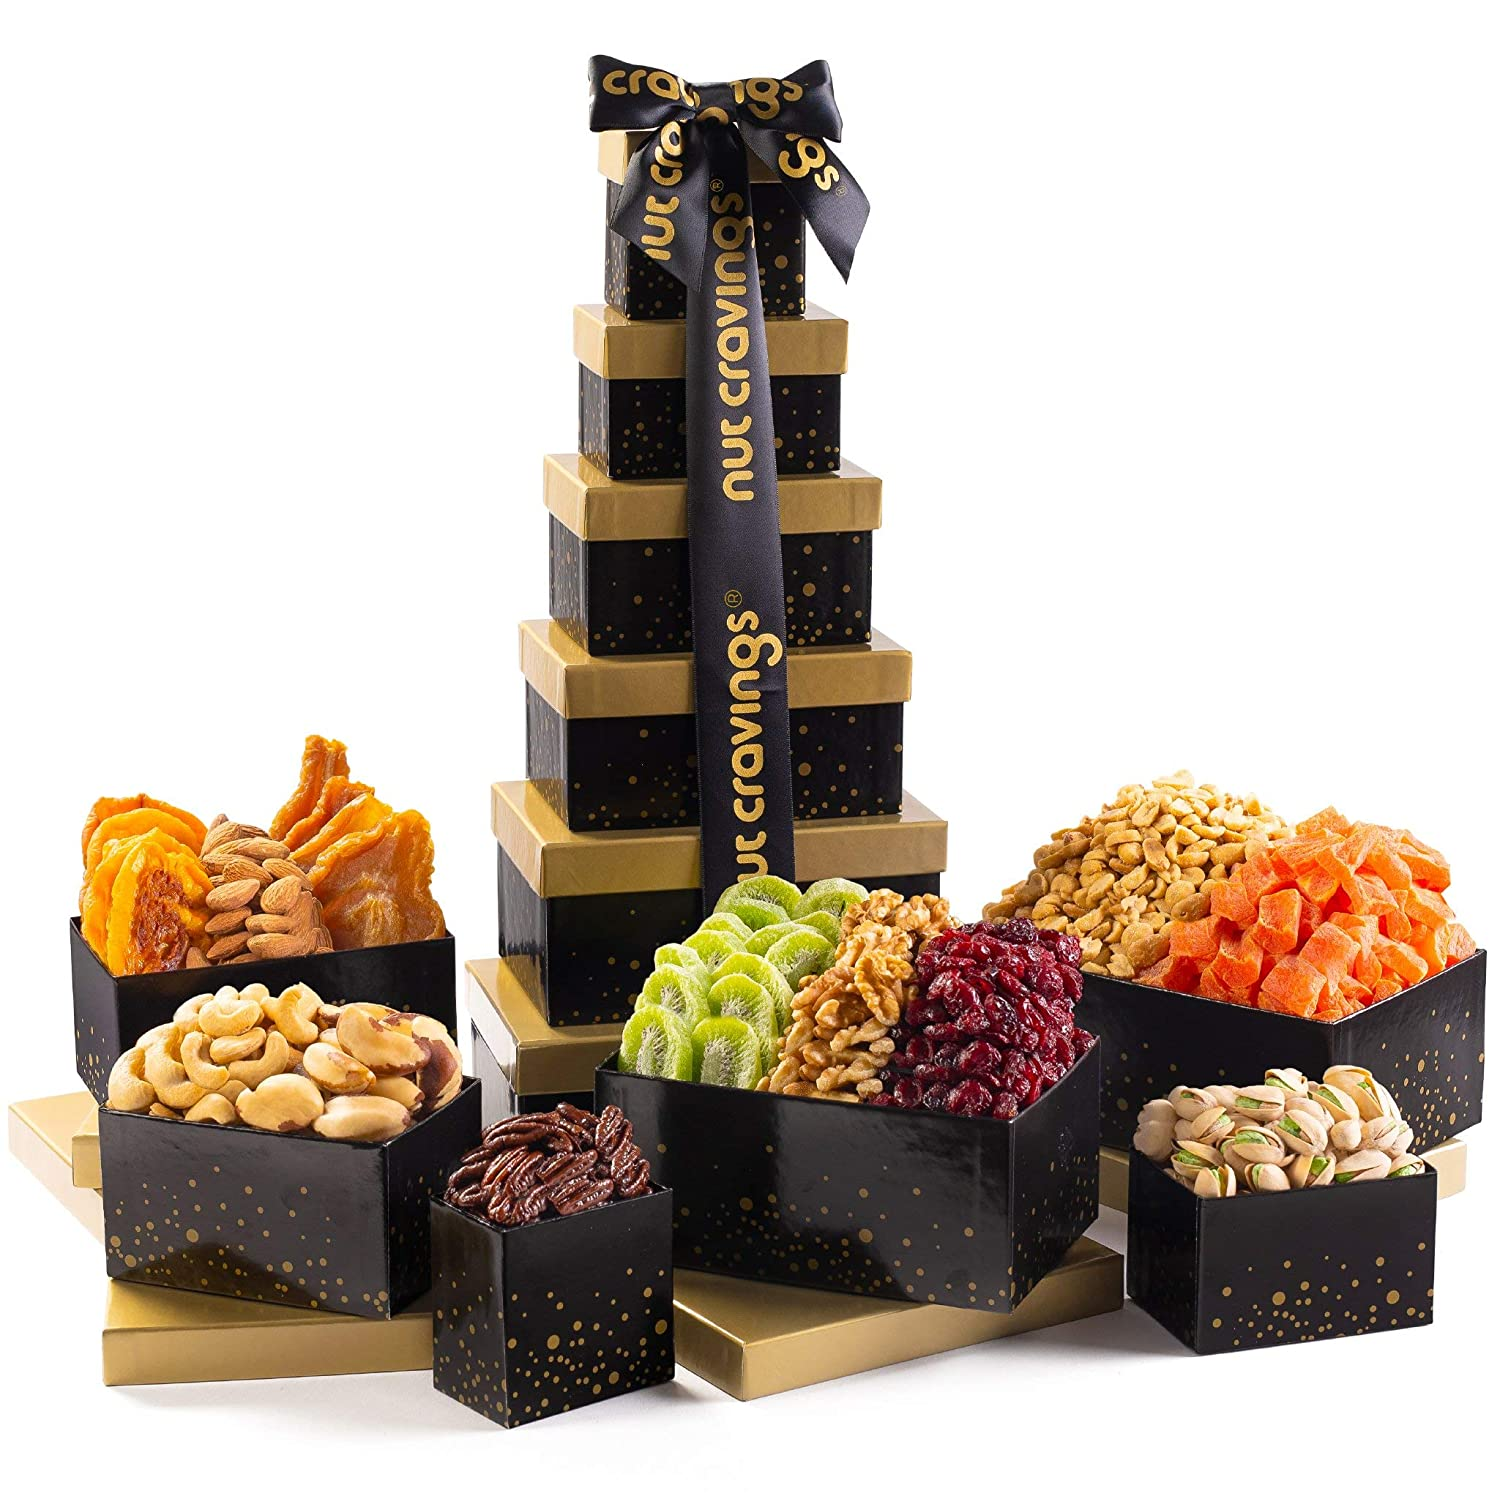 Holiday Christmas Dried Fruit & Nut Gift Basket, Black Tower (12 Mix) - Prime Xmas Gourmet Food Arrangement Platter, Care Package Assortment, Healthy Kosher Snack Box for Families, Women, Men, Adults